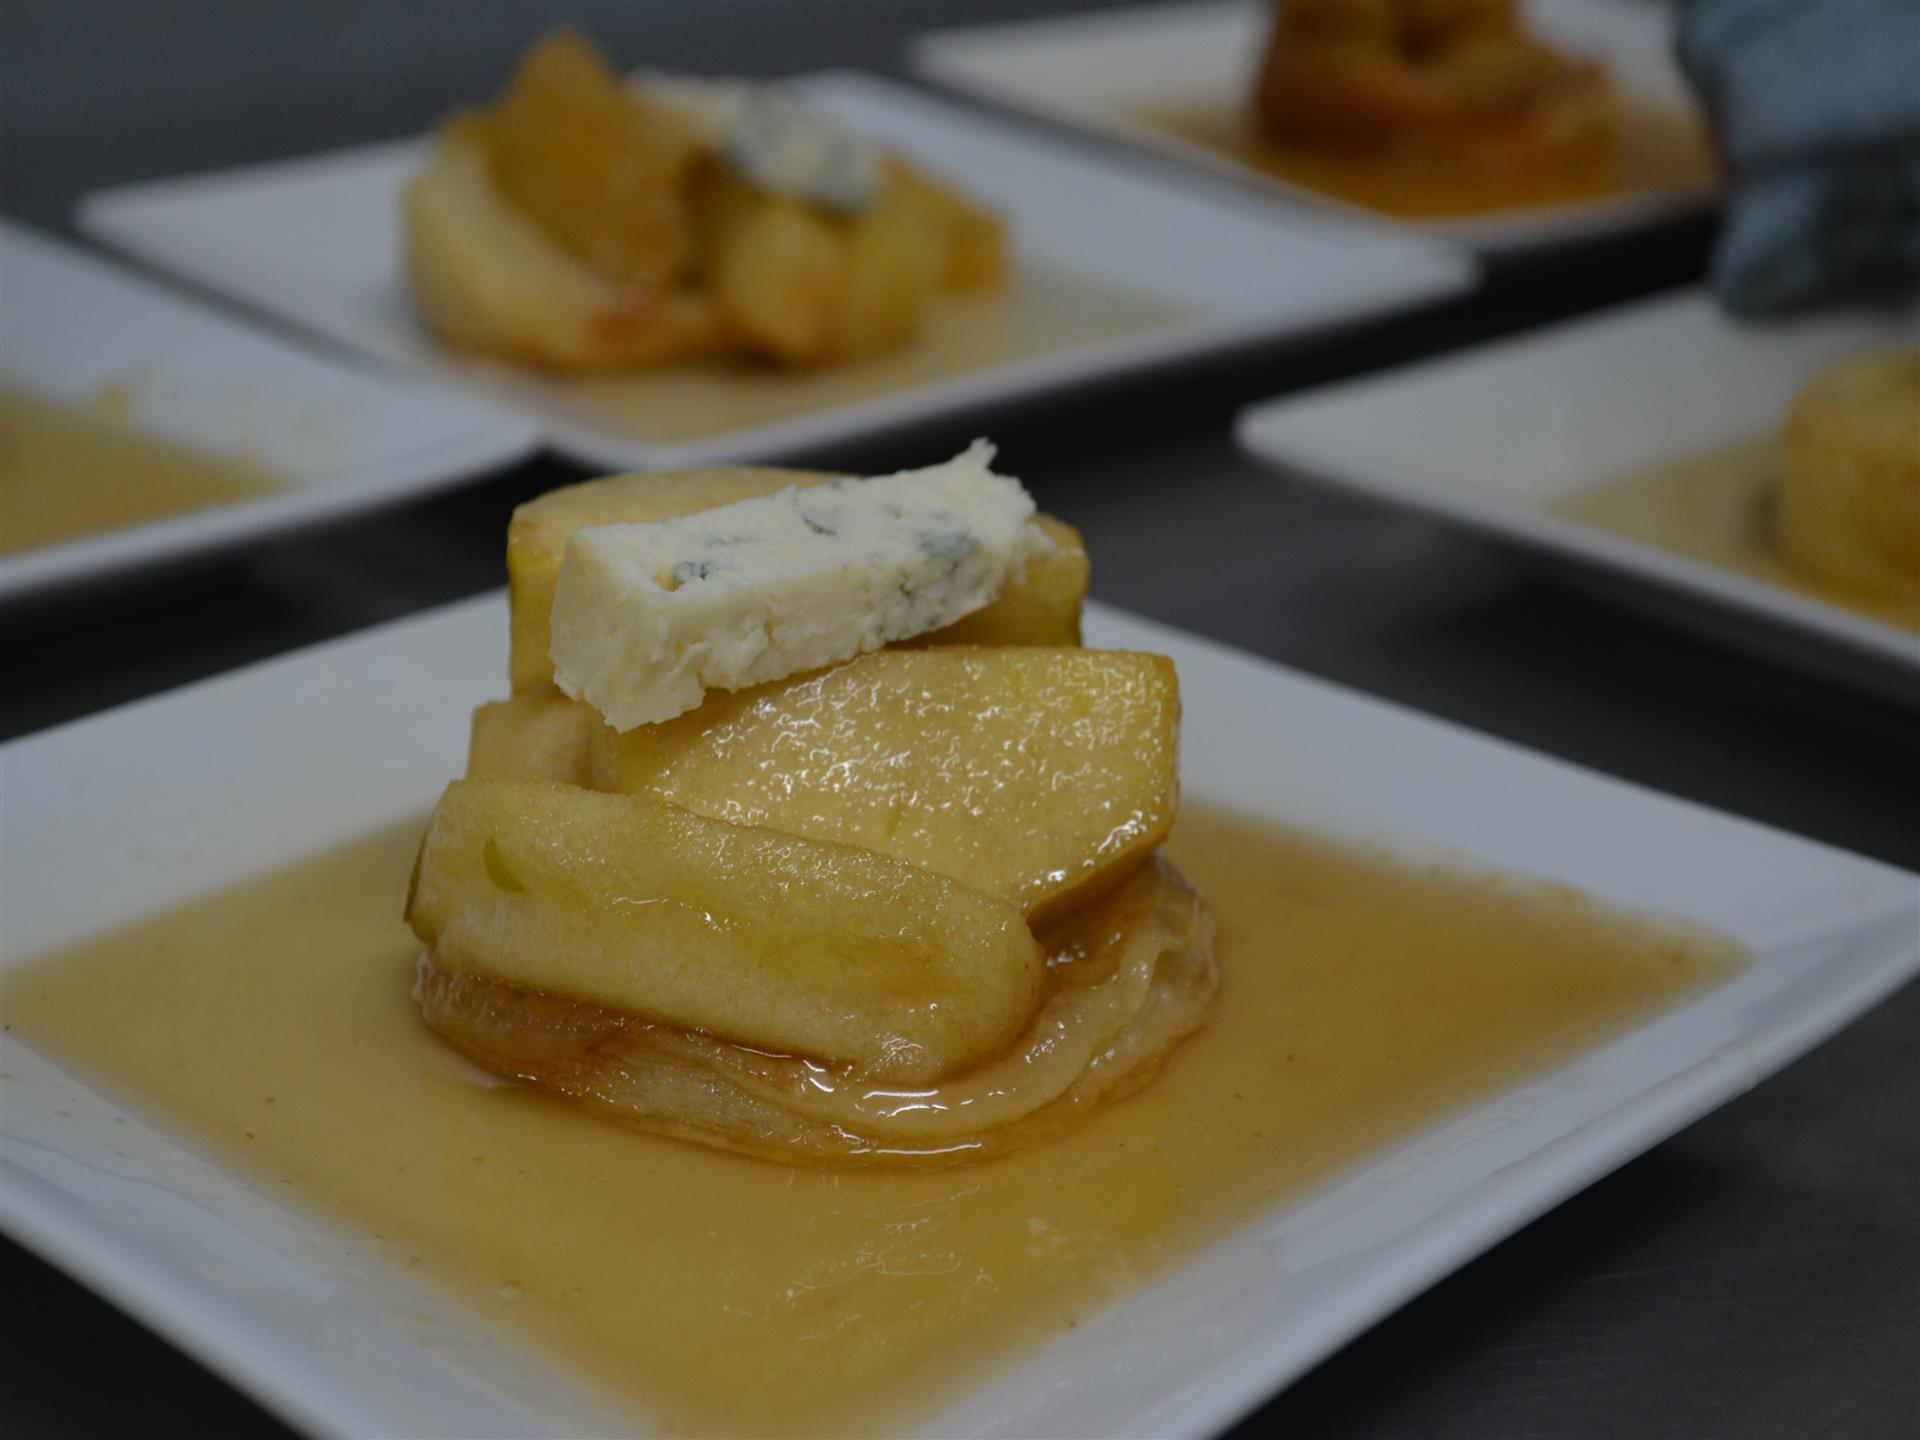 Pancake topped with apples and blue cheese, served with maple syrup